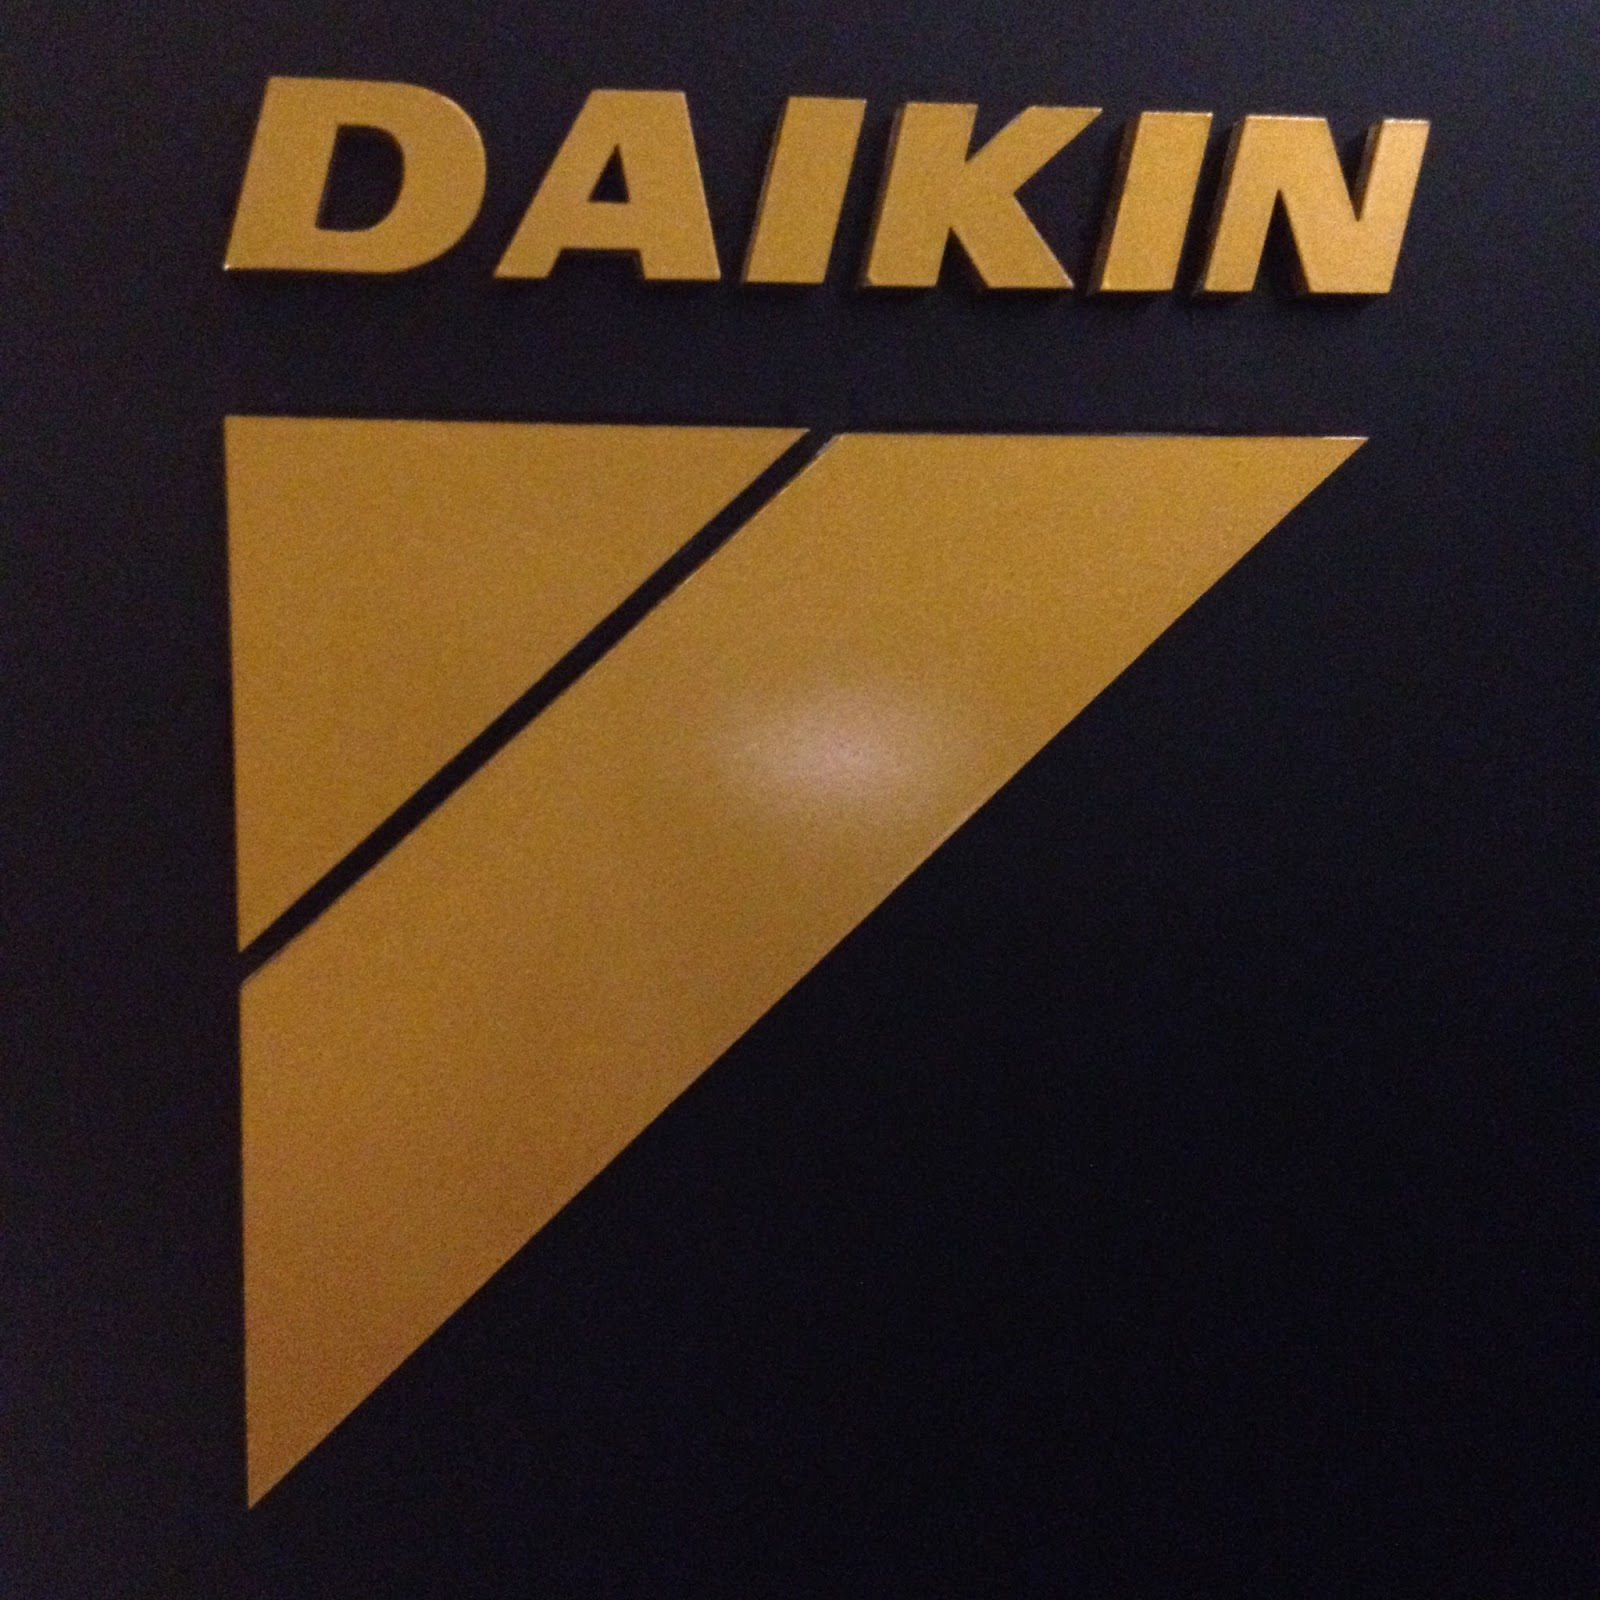 Monchster Chronicles: Daikin Focuses On Saving Mother Earth With